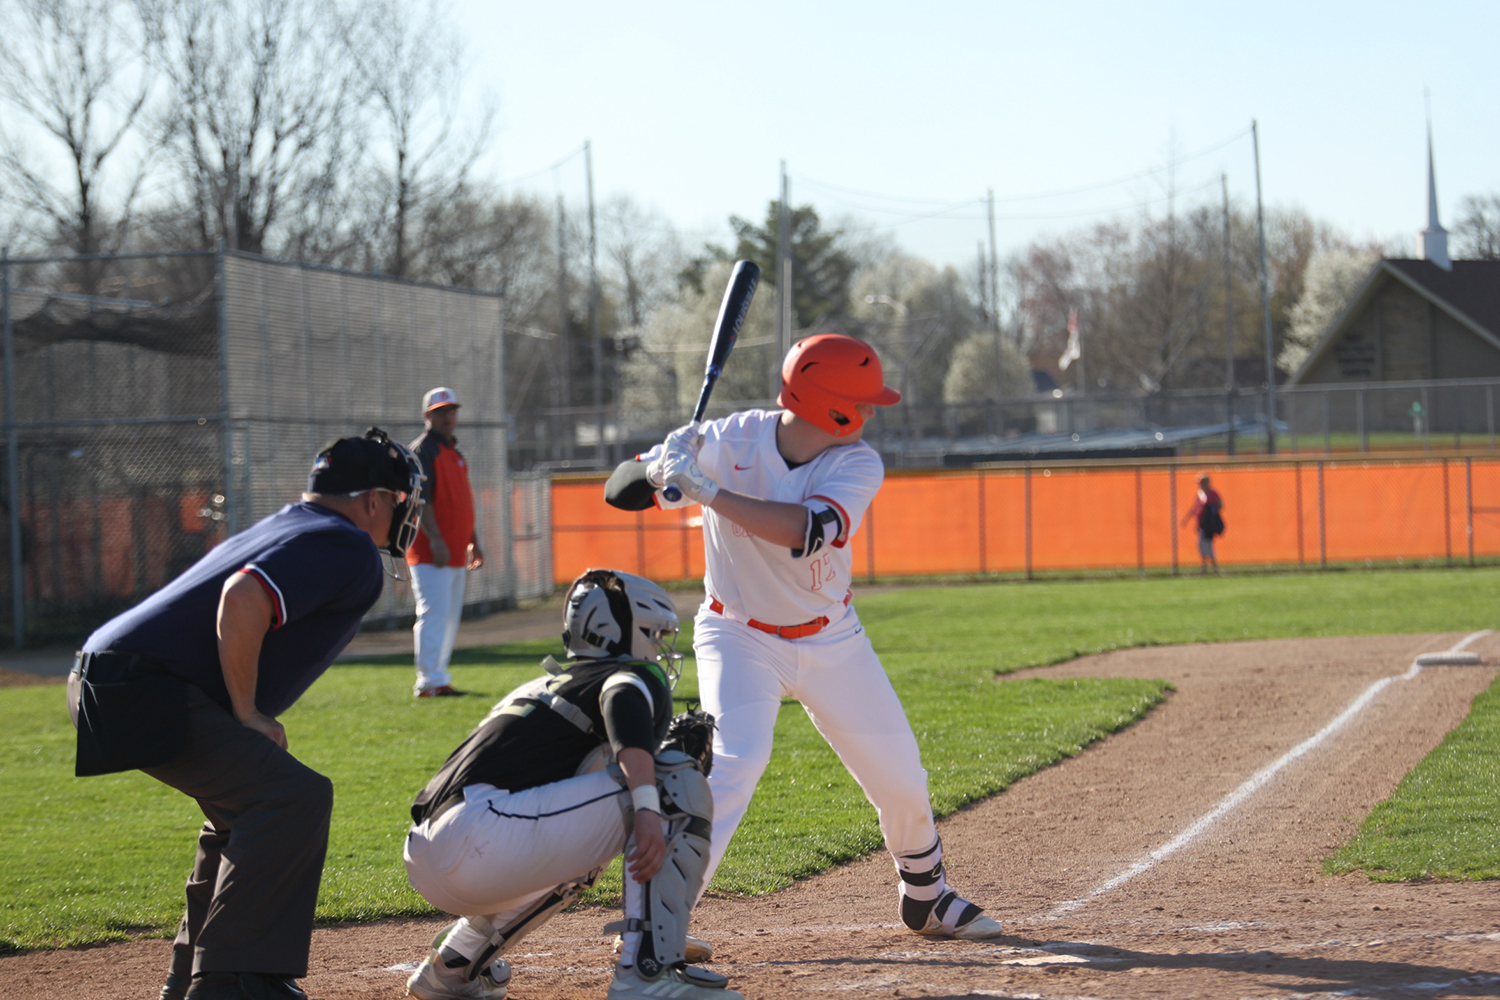 Senior Nash Murphy gets ready to to hit.